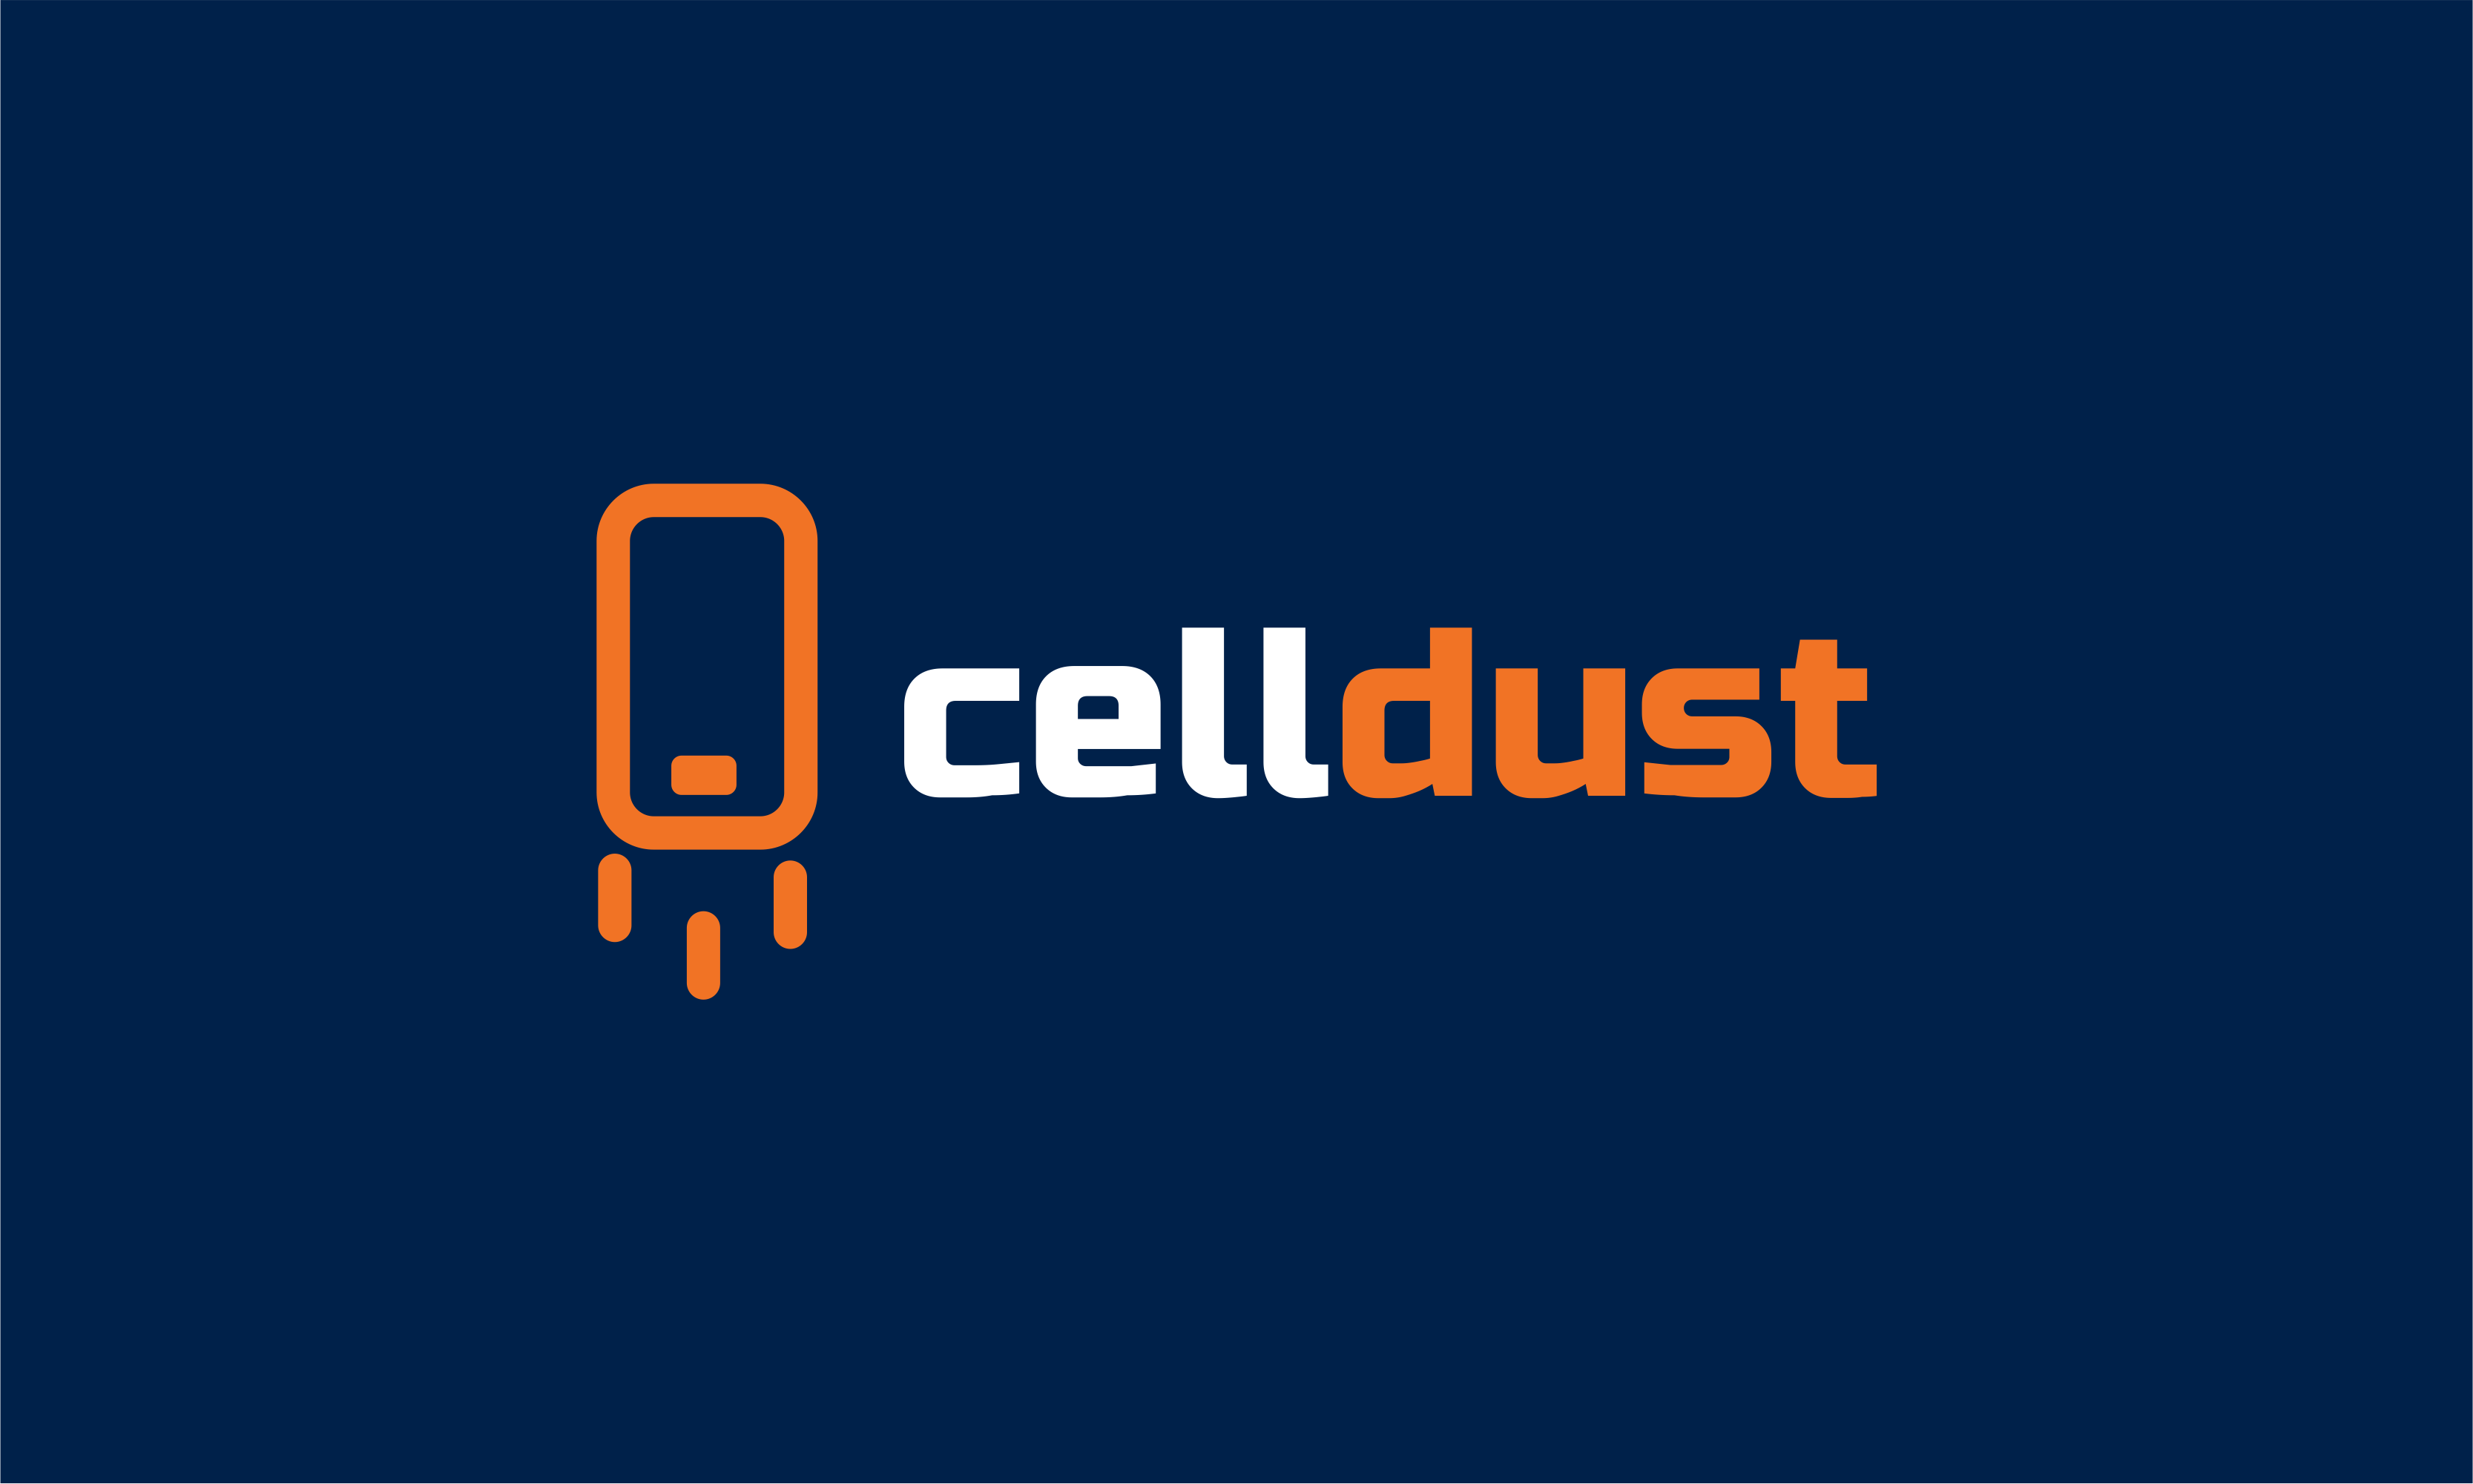 Celldust